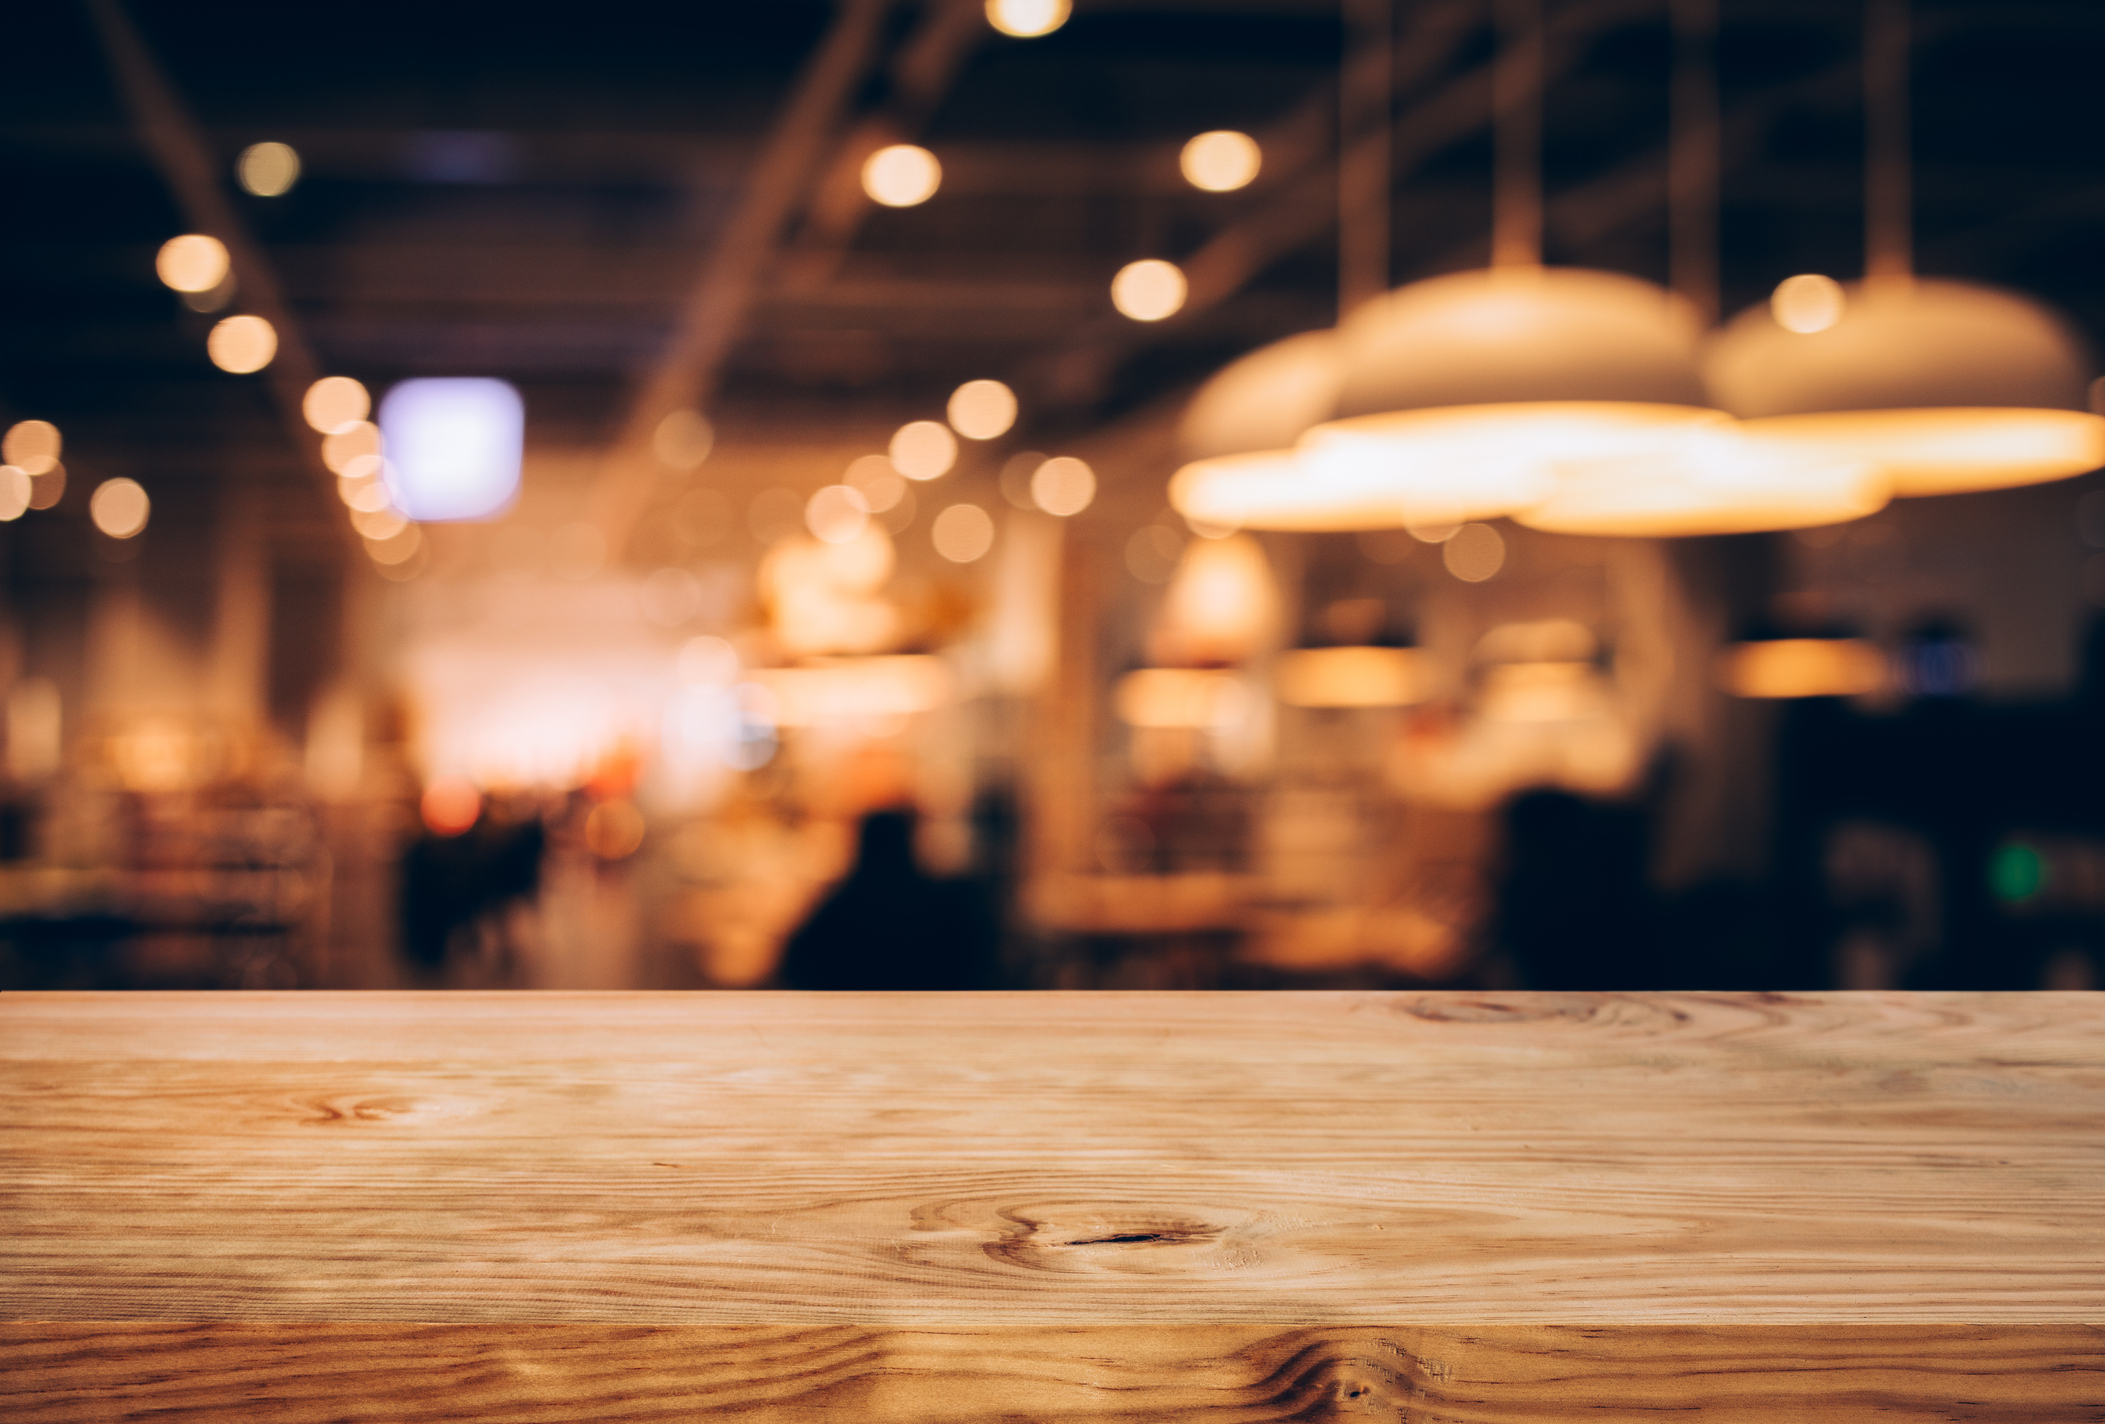 20-person cap on restaurant bookings takes industry by surprise